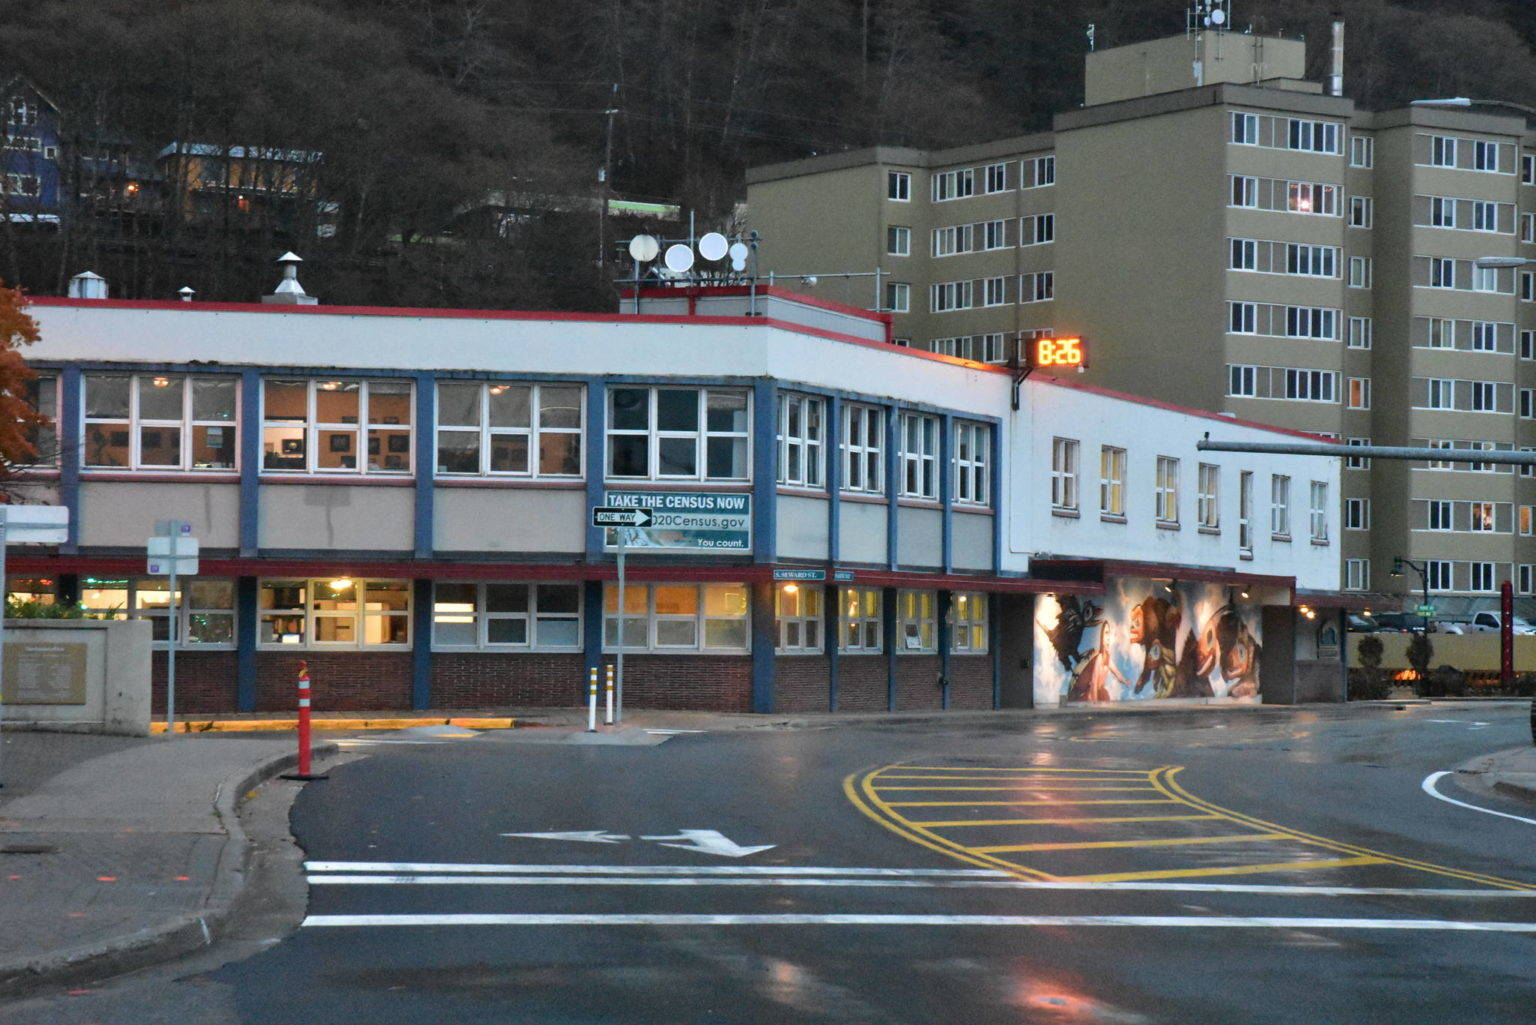 This photo shows Juneau City Hall on Tuesday, Oct. 24. The City and Borough of Juneau passed an ordinance requiring the confidential disclosure to the city assessor's office of the sales price of real estate transactions in the borough which went into effect Monday, Nov. 30. (Peter Segall / Juneau Empire)